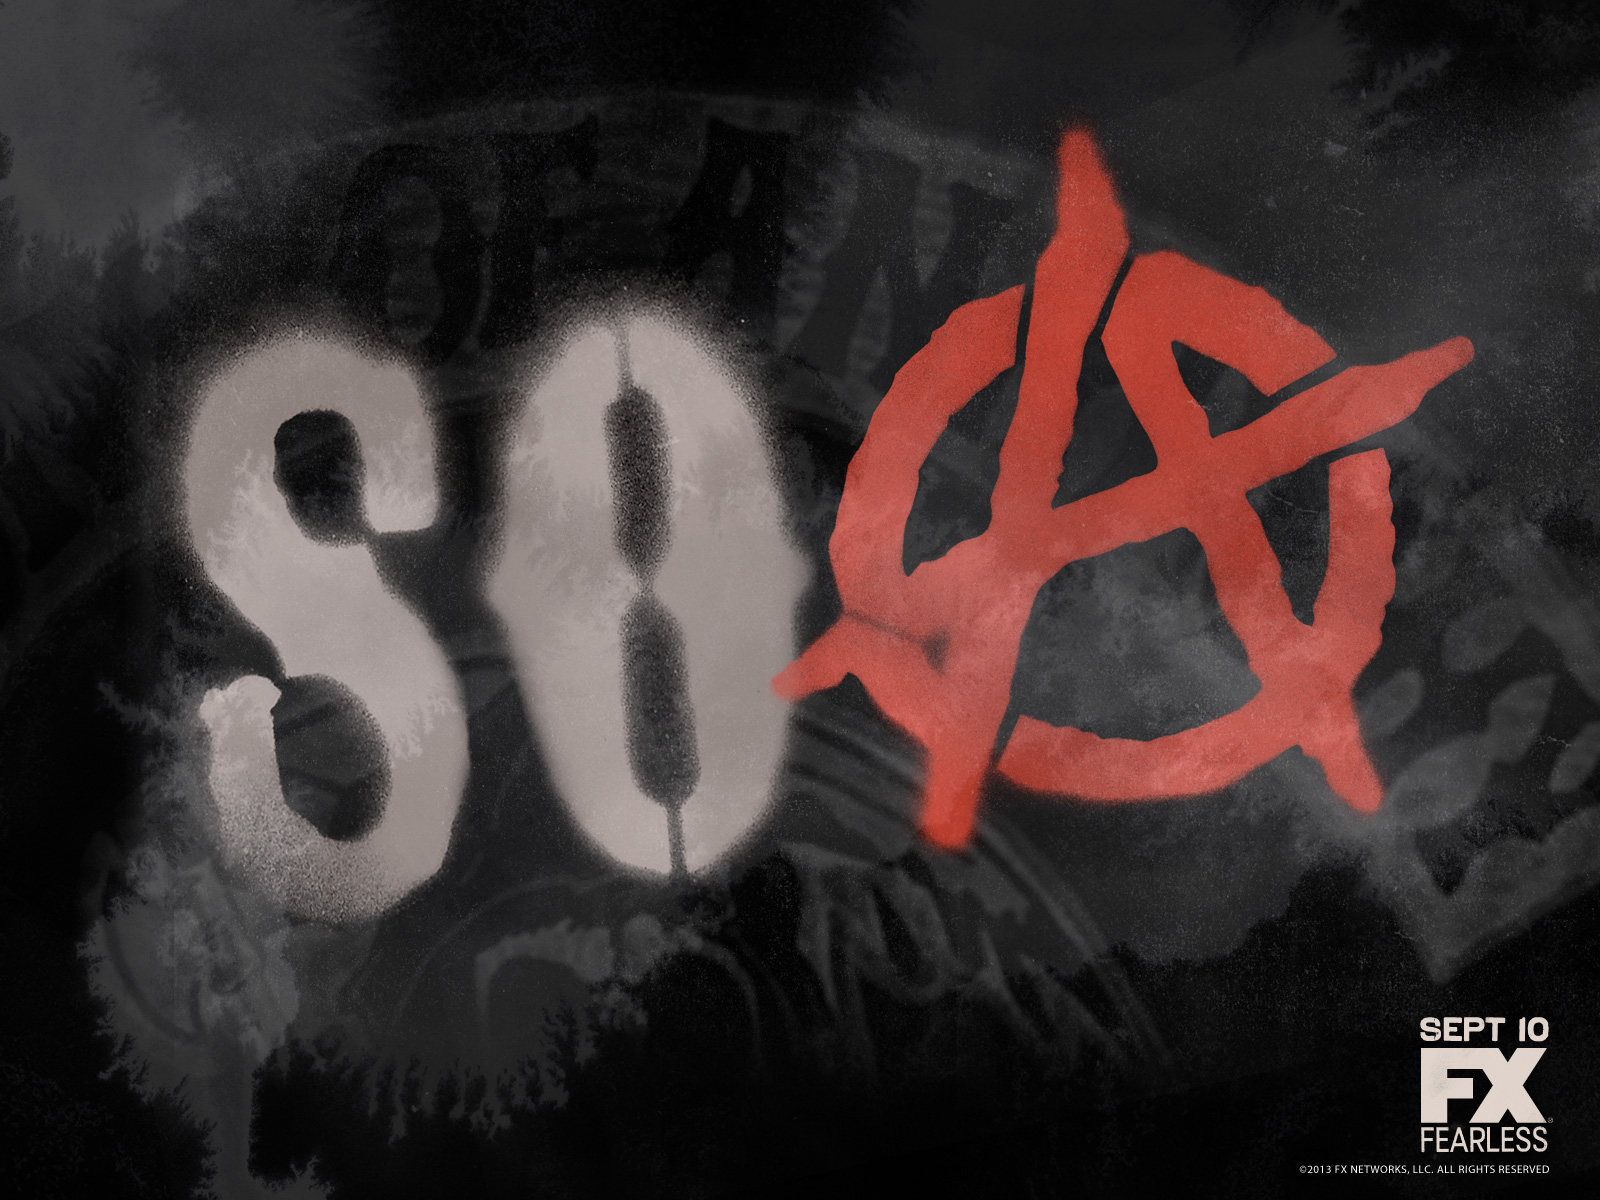 New 500 screensaver Anarchy screensaver 1600x1200